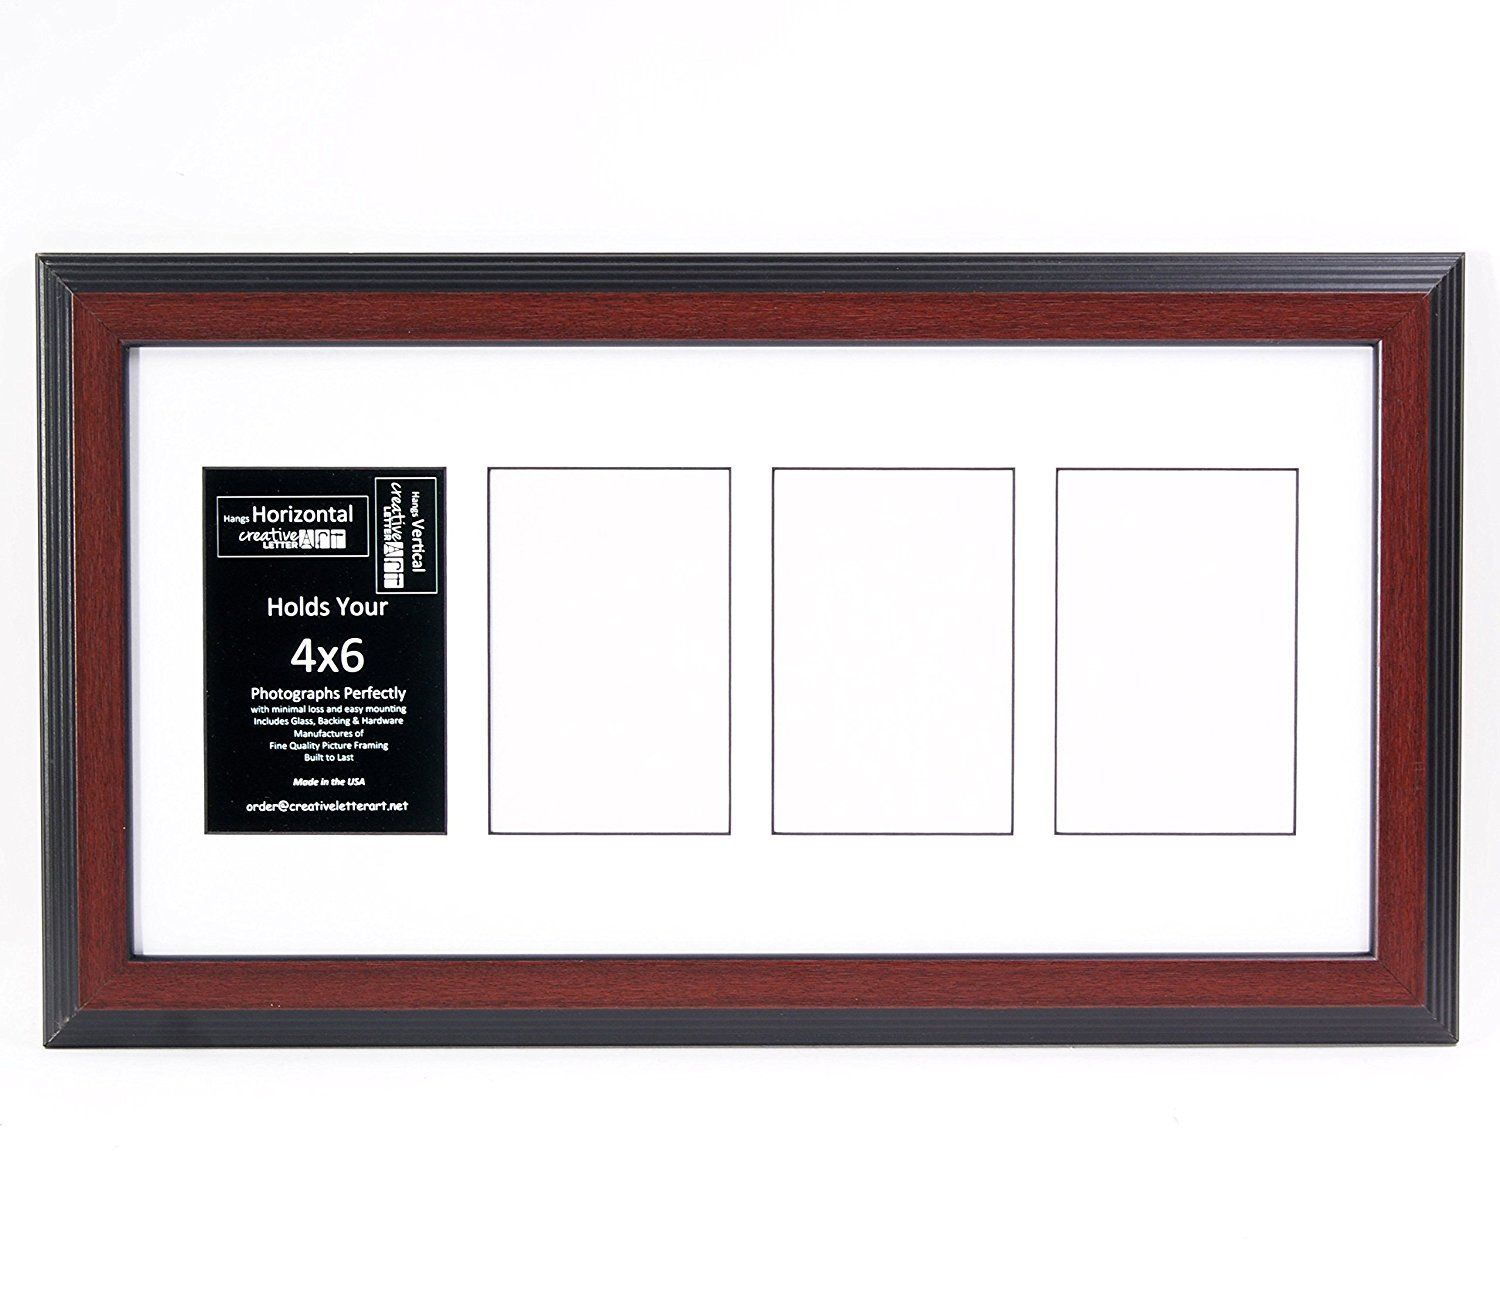 4 Opening Glass Face Mahogany Picture Frame To Hold 4 By 6 Photographs Including 10 By 20 Inch White Mat Collage Picture Frames Small Pictures Frame